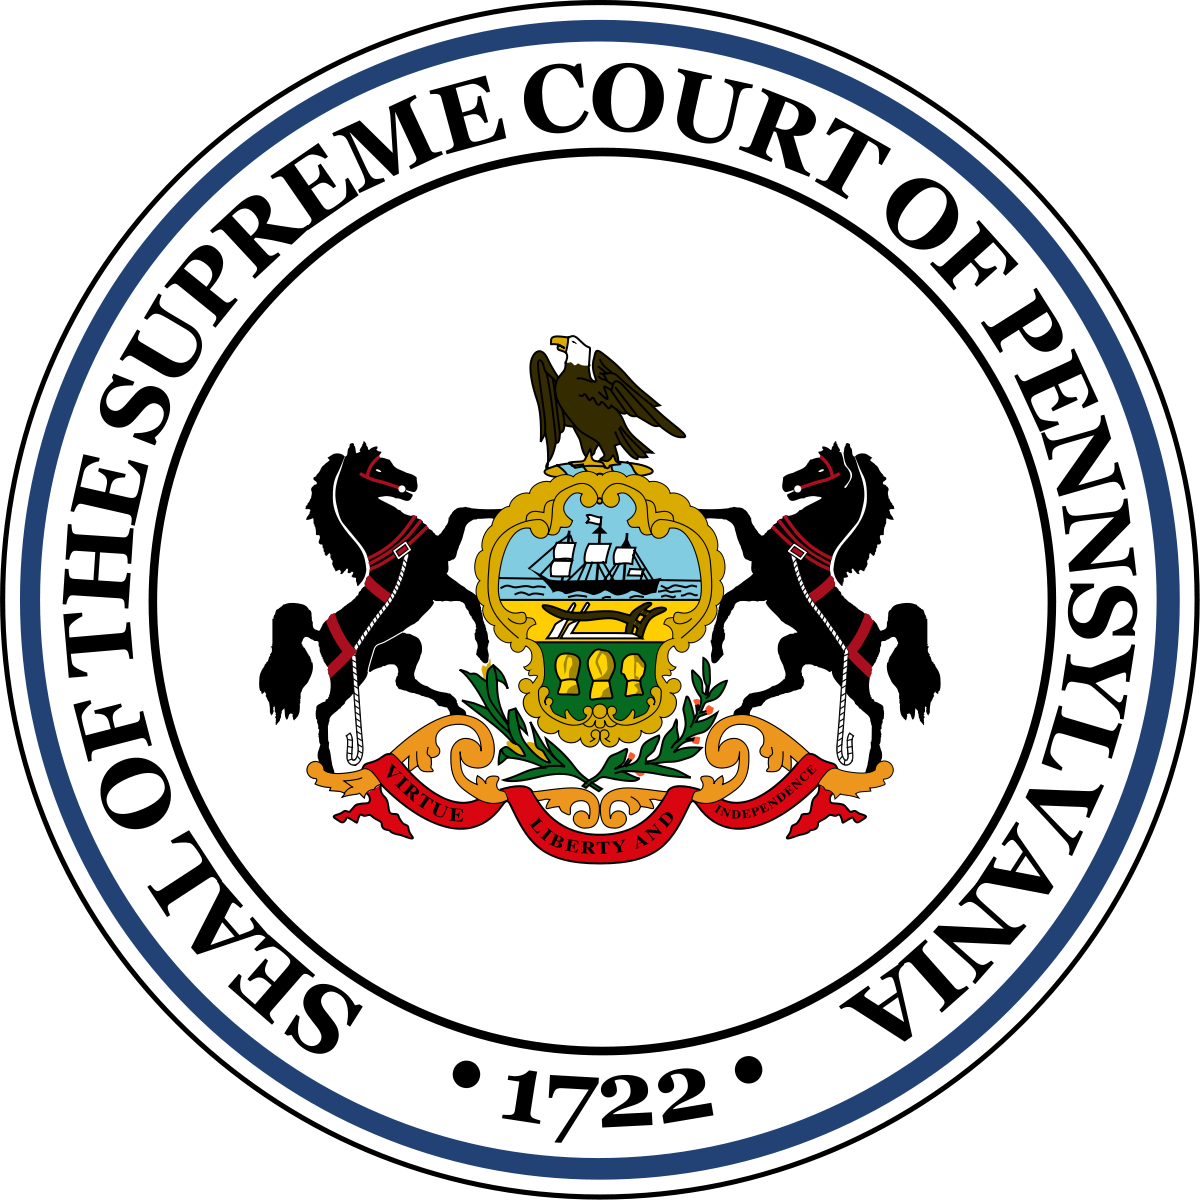 1200x1200 Supreme Court Of Pennsylvania